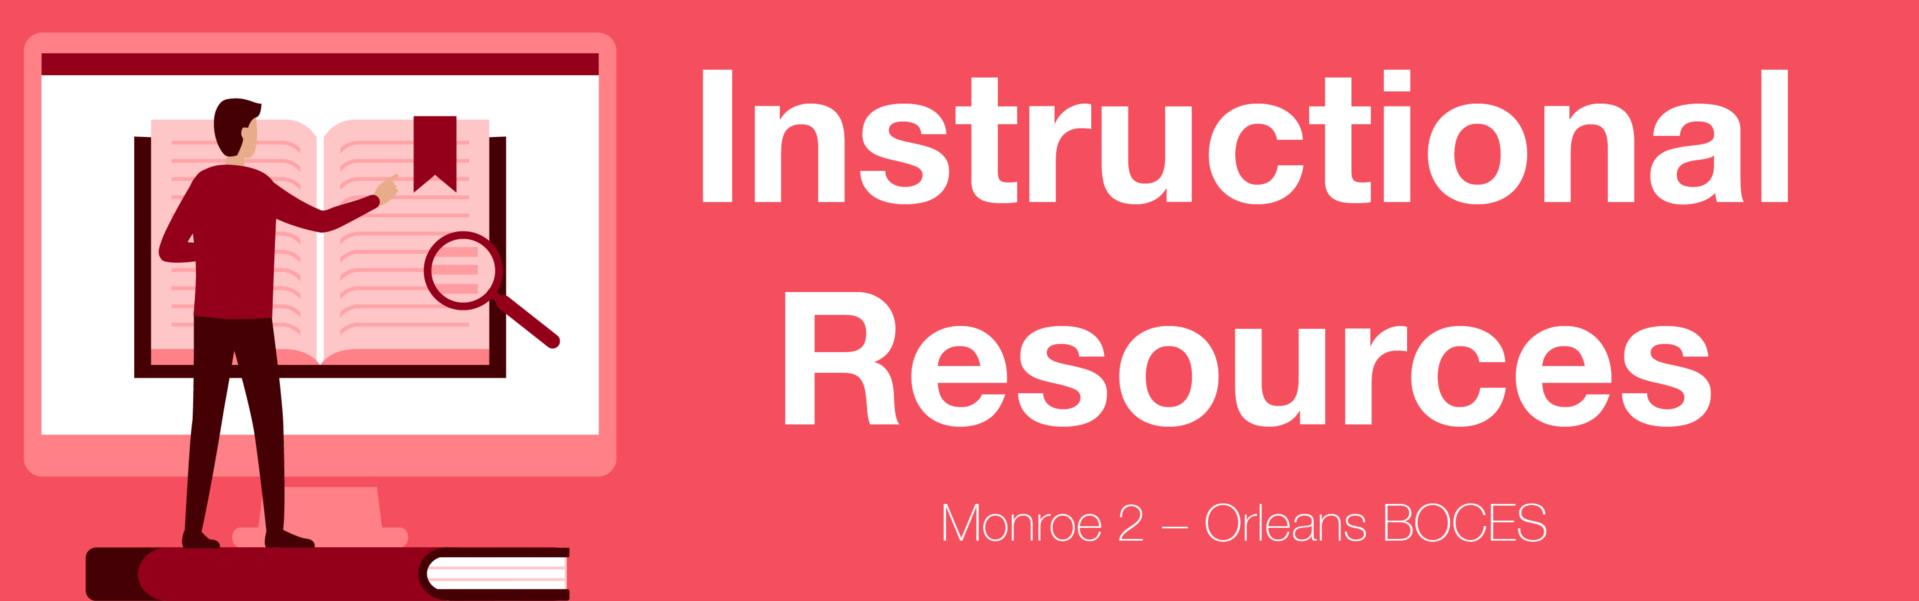 Instructional Resources Header